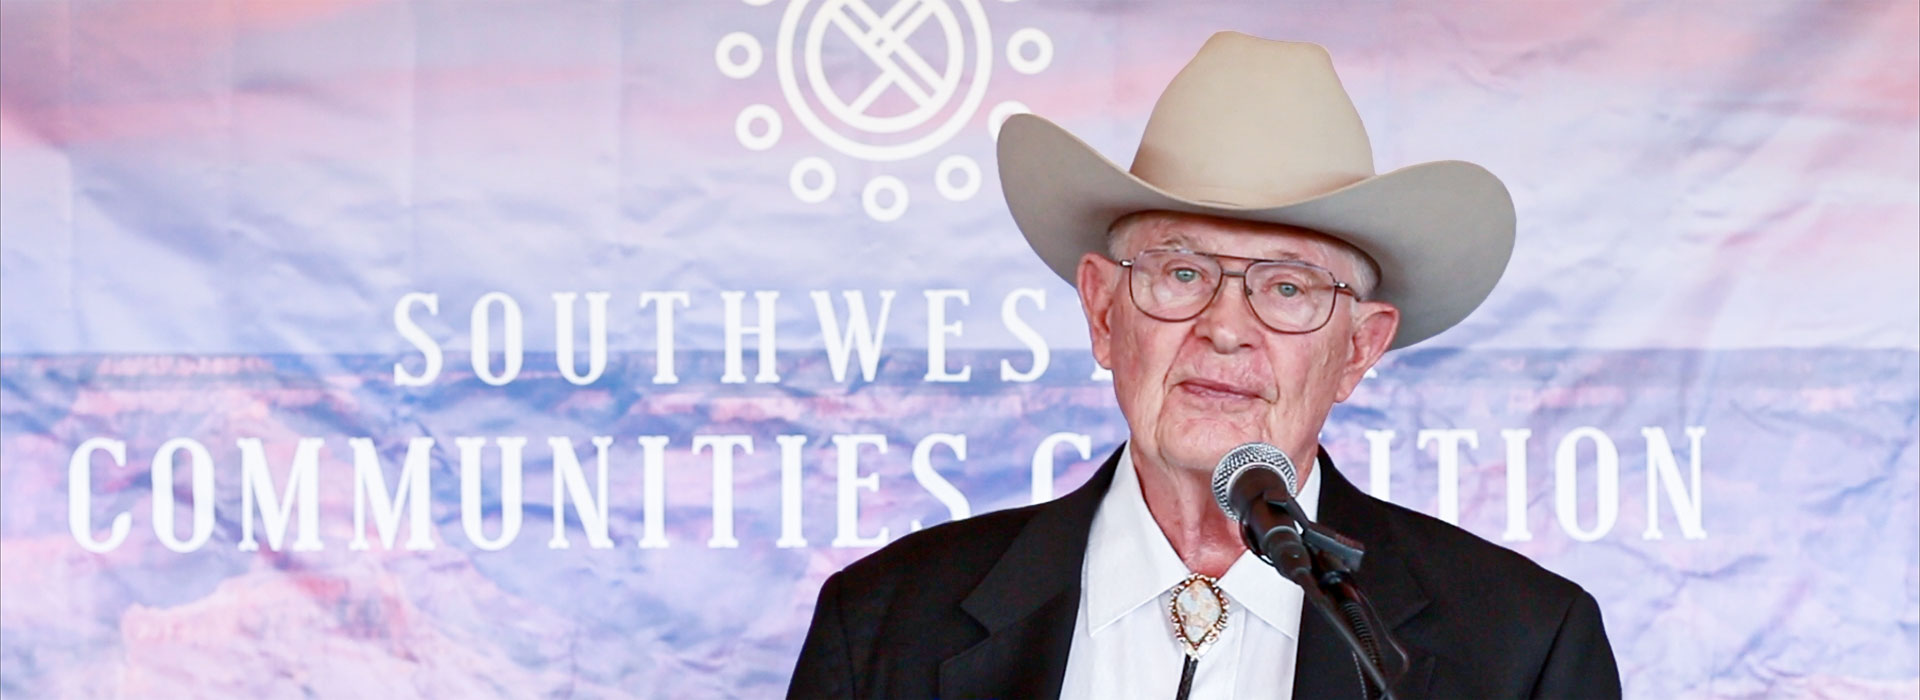 Rancher Jim Chilton Speaks at Southwestern Communities Coalition Kickoff Luncheon